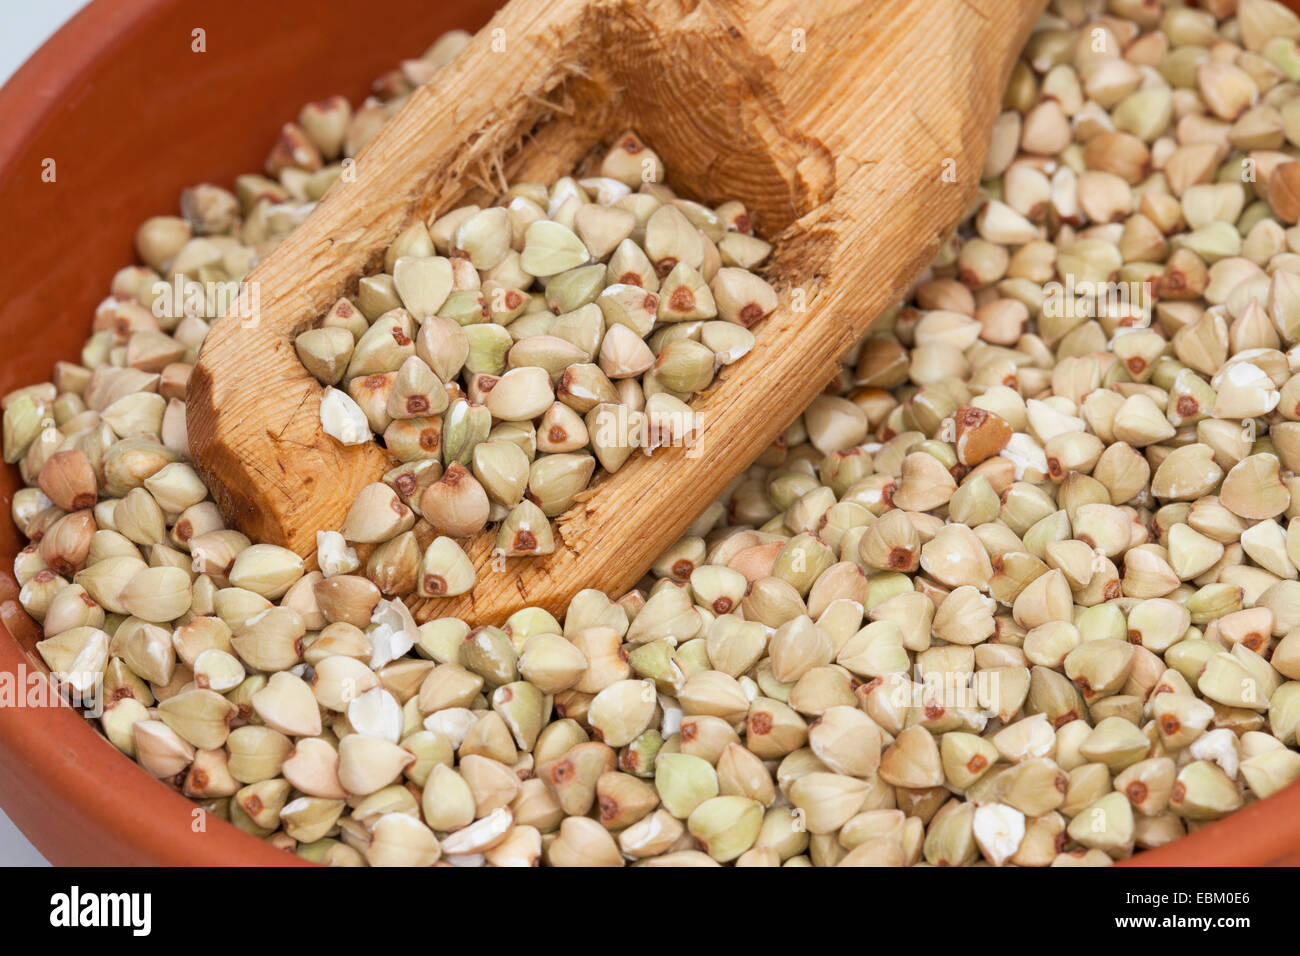 buckwheat (Fagopyrum esculentum), seeds in dish with a wooden spoon - Stock Image